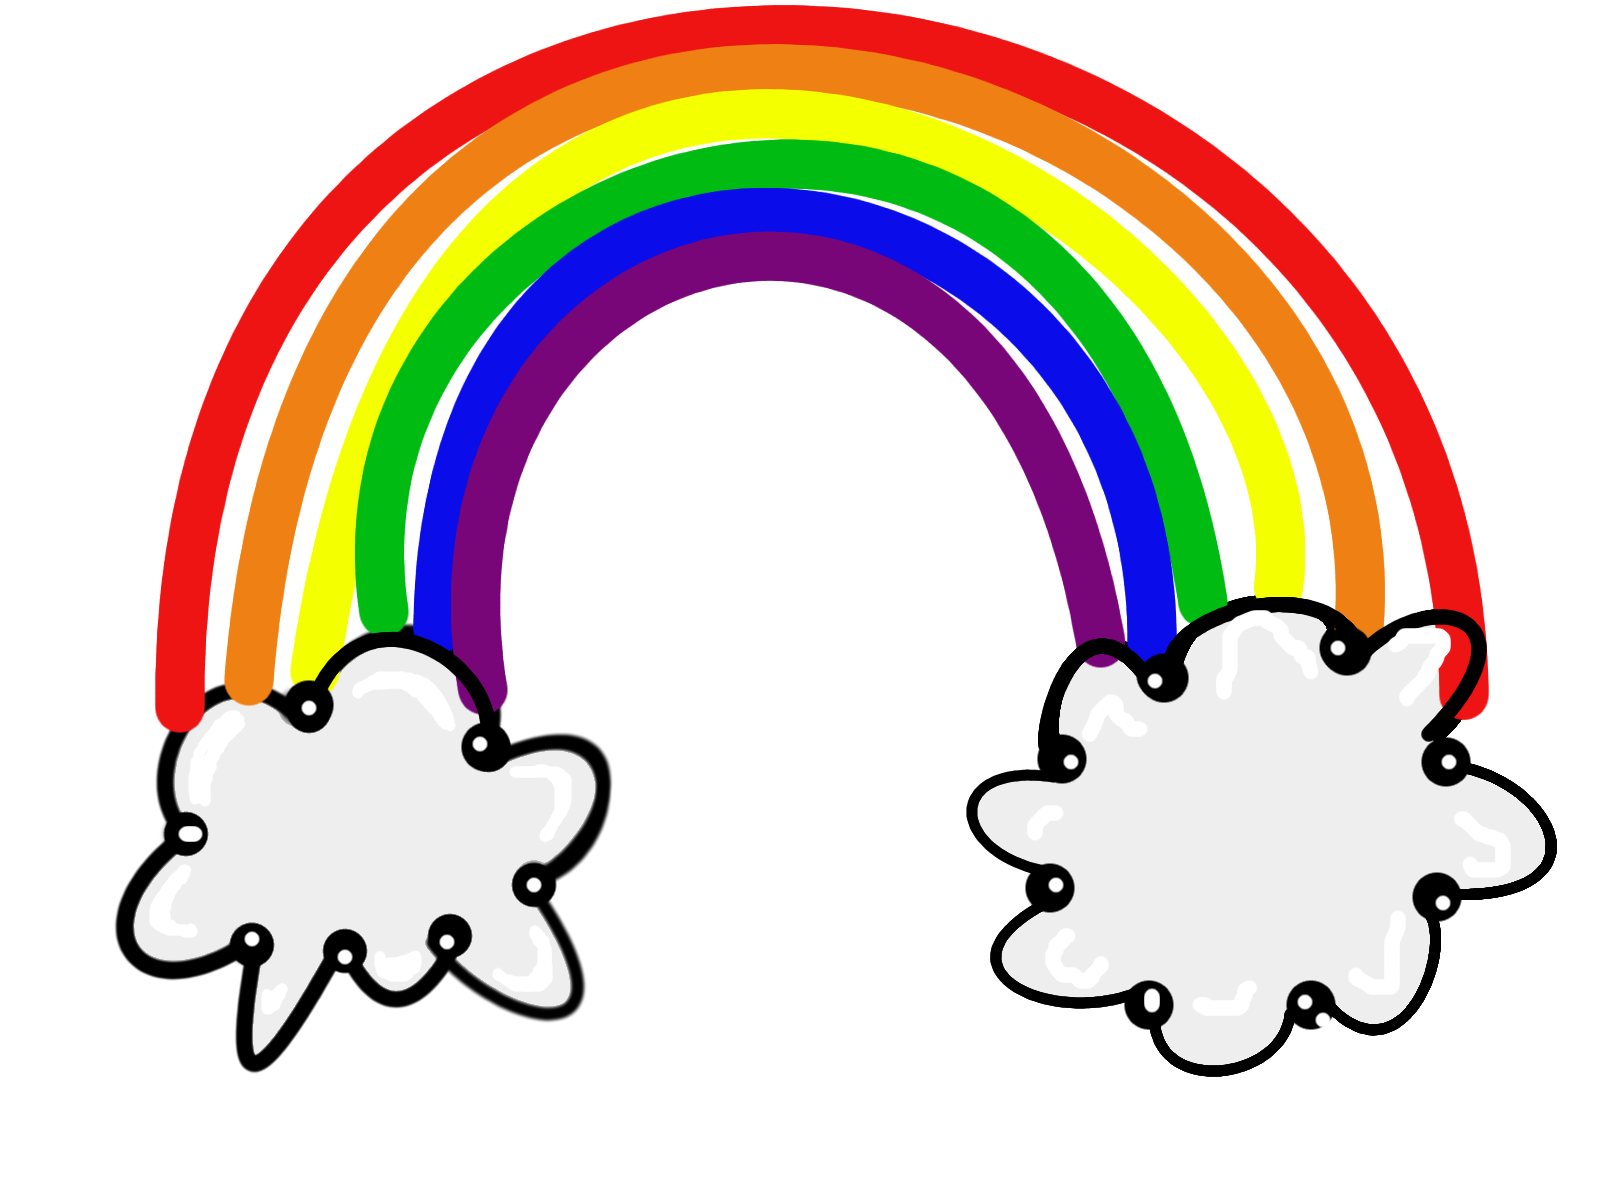 1600x1200 Rainbow Clouds Clipart Image